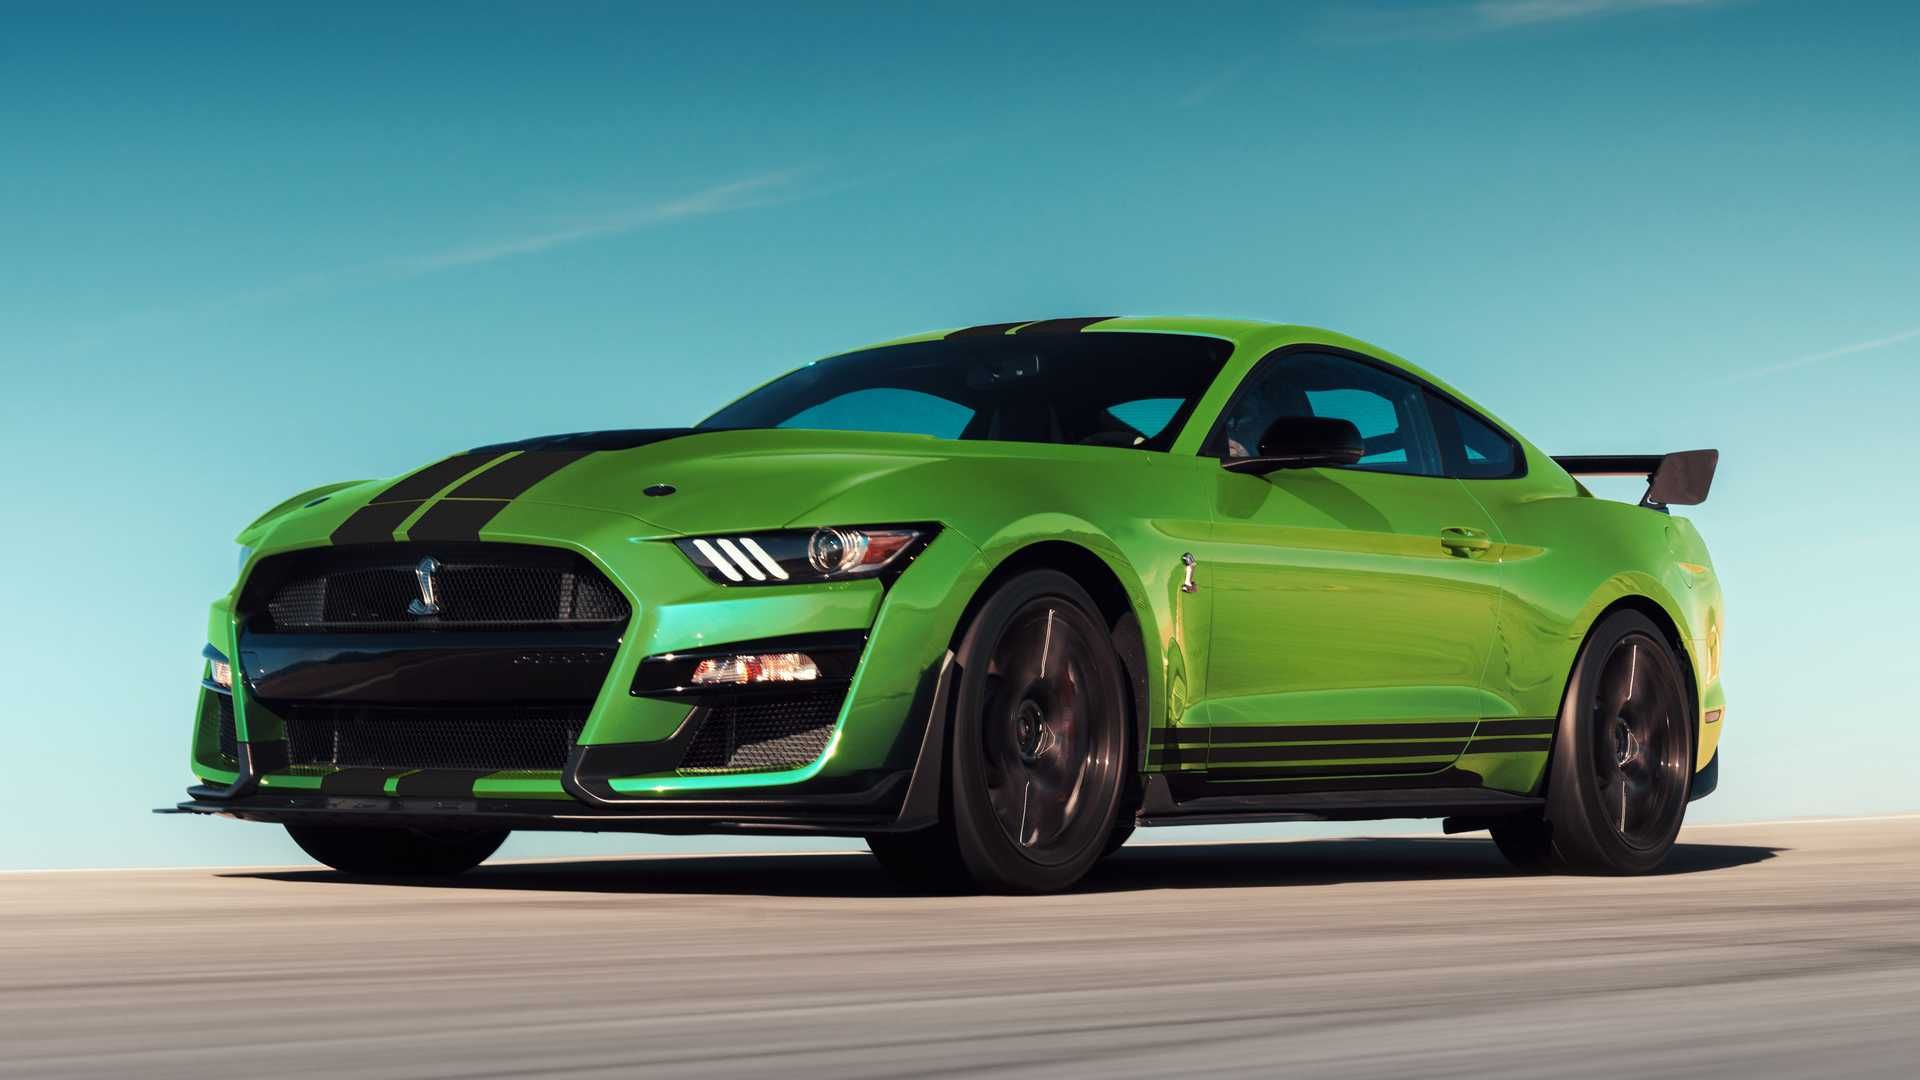 Grabber Lime Ford Mustang Shelby Gt500 Fast Ford Mustang Shelby Gt500 Mustang Gt500 Shelby Gt500